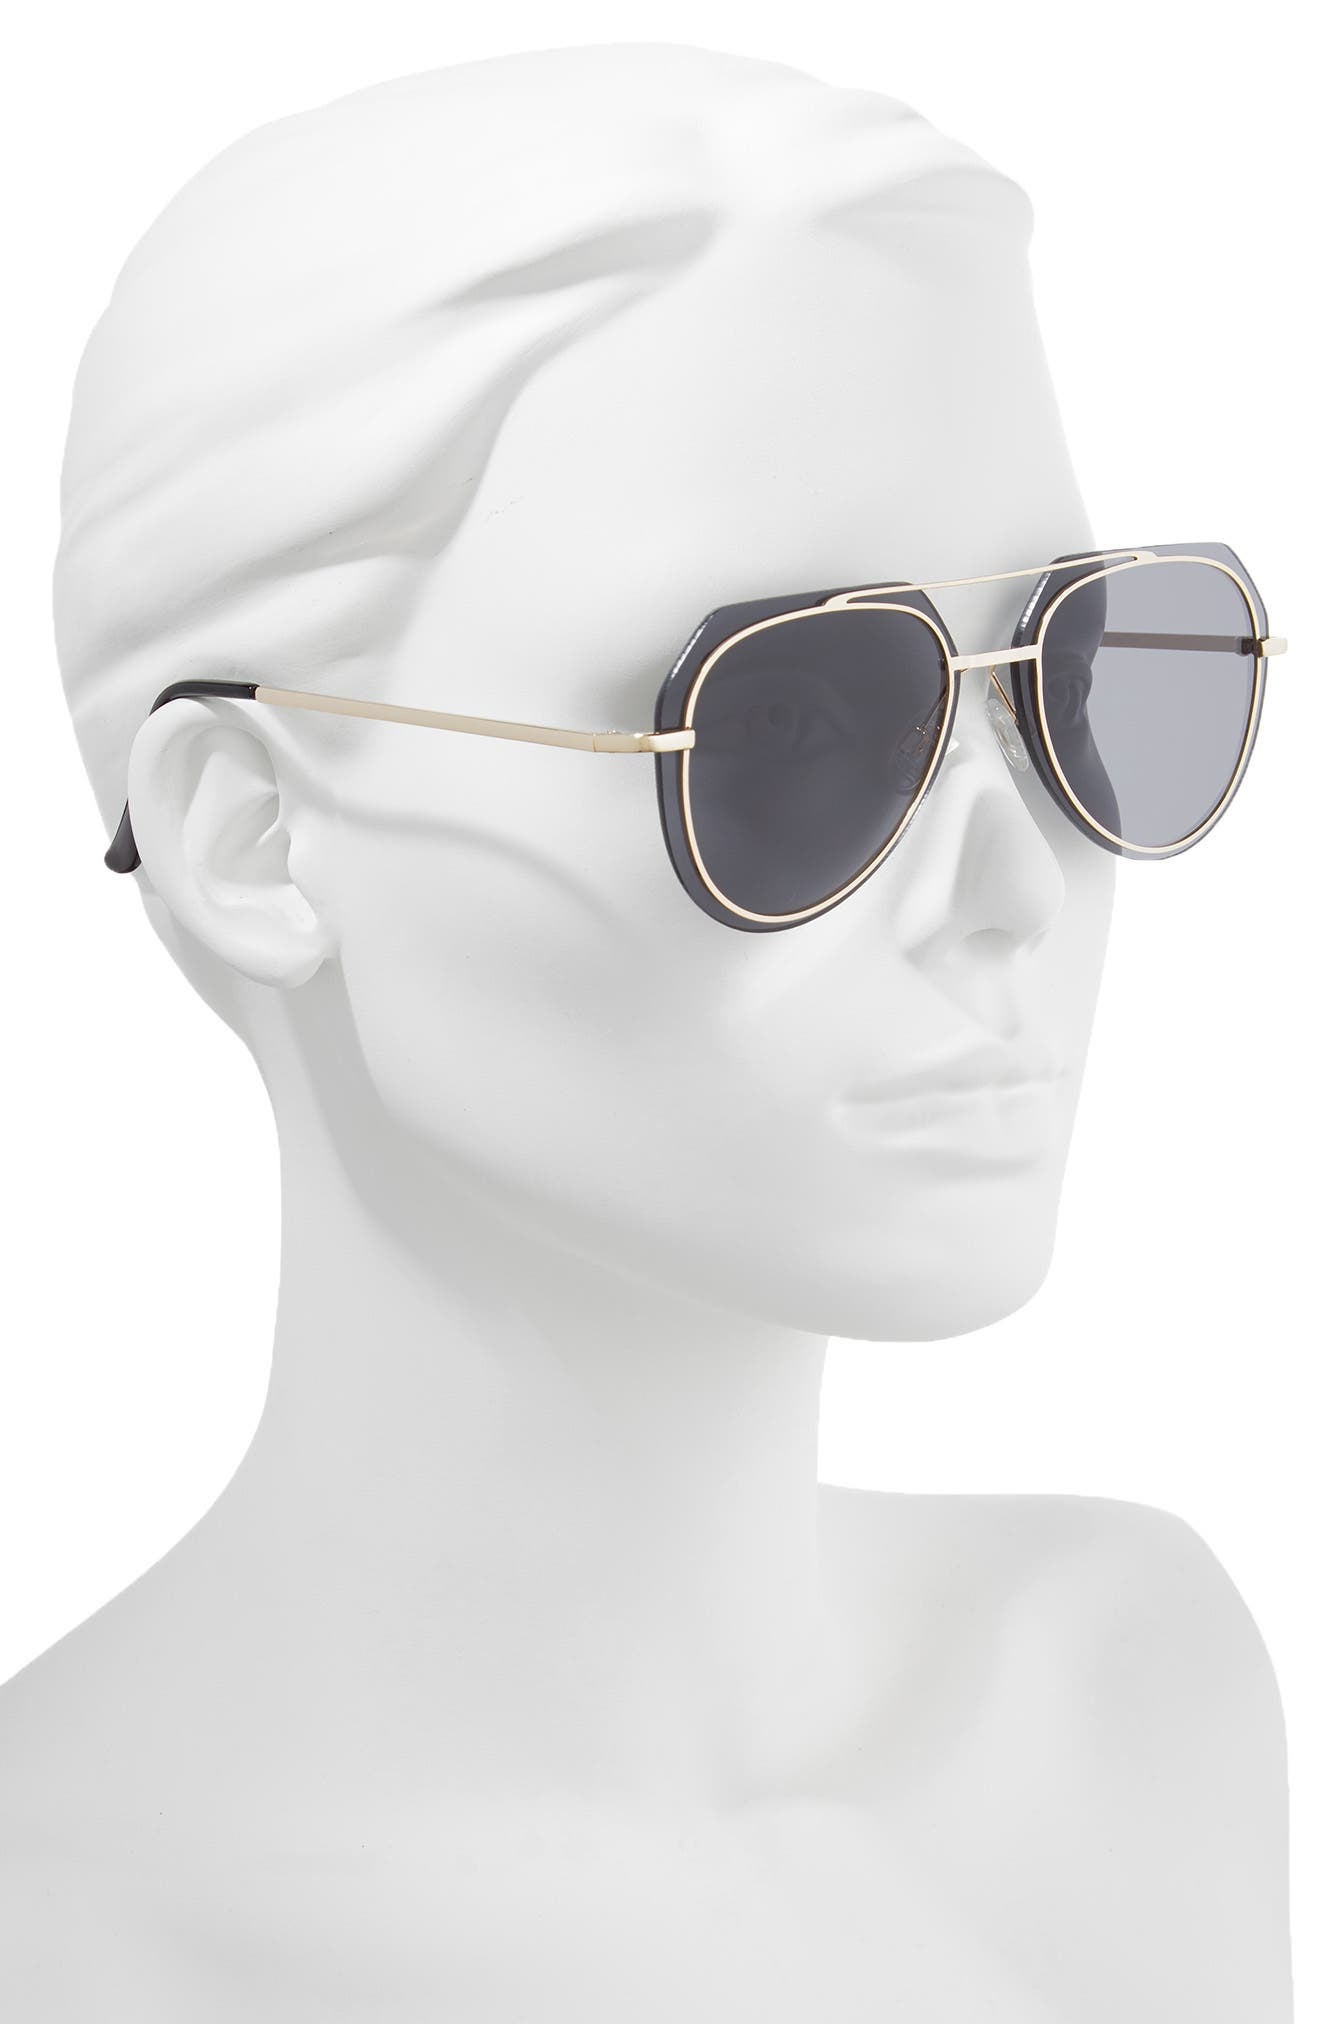 60mm Metal Trim Flat Aviator Sunglasses,                             Alternate thumbnail 2, color,                             Gold/ Black